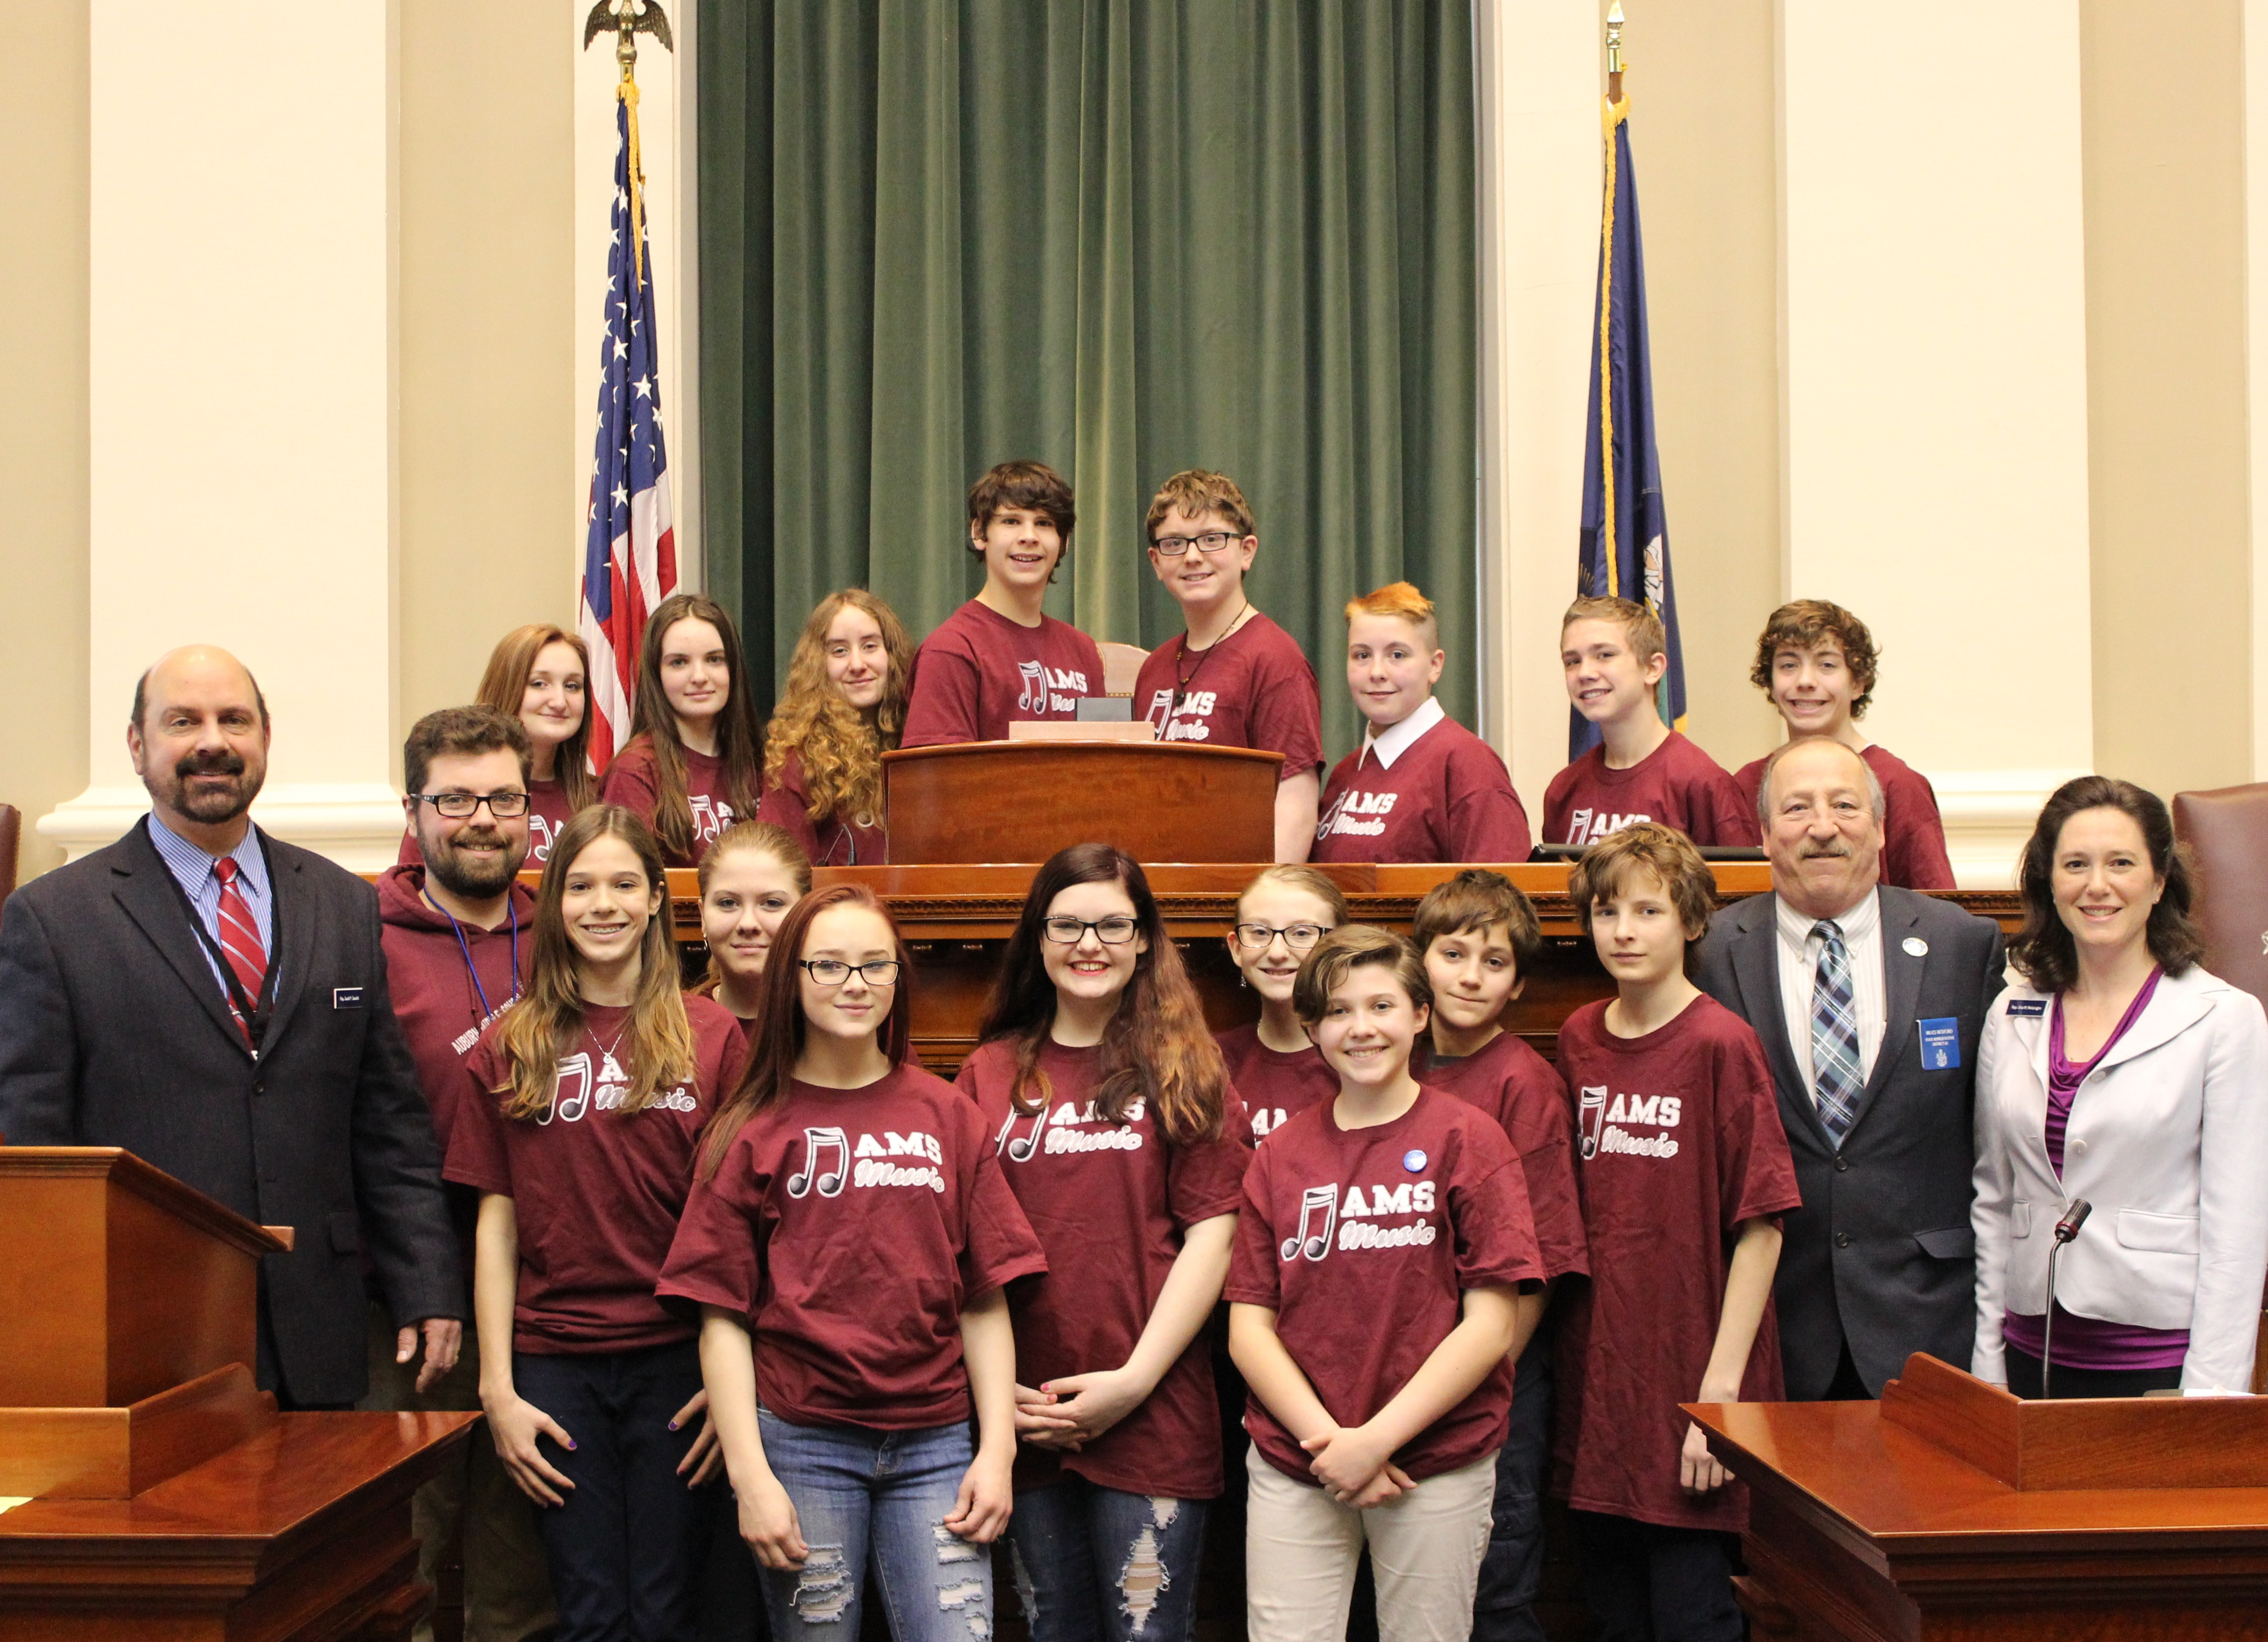 Middle School Select Choir Sings At State House